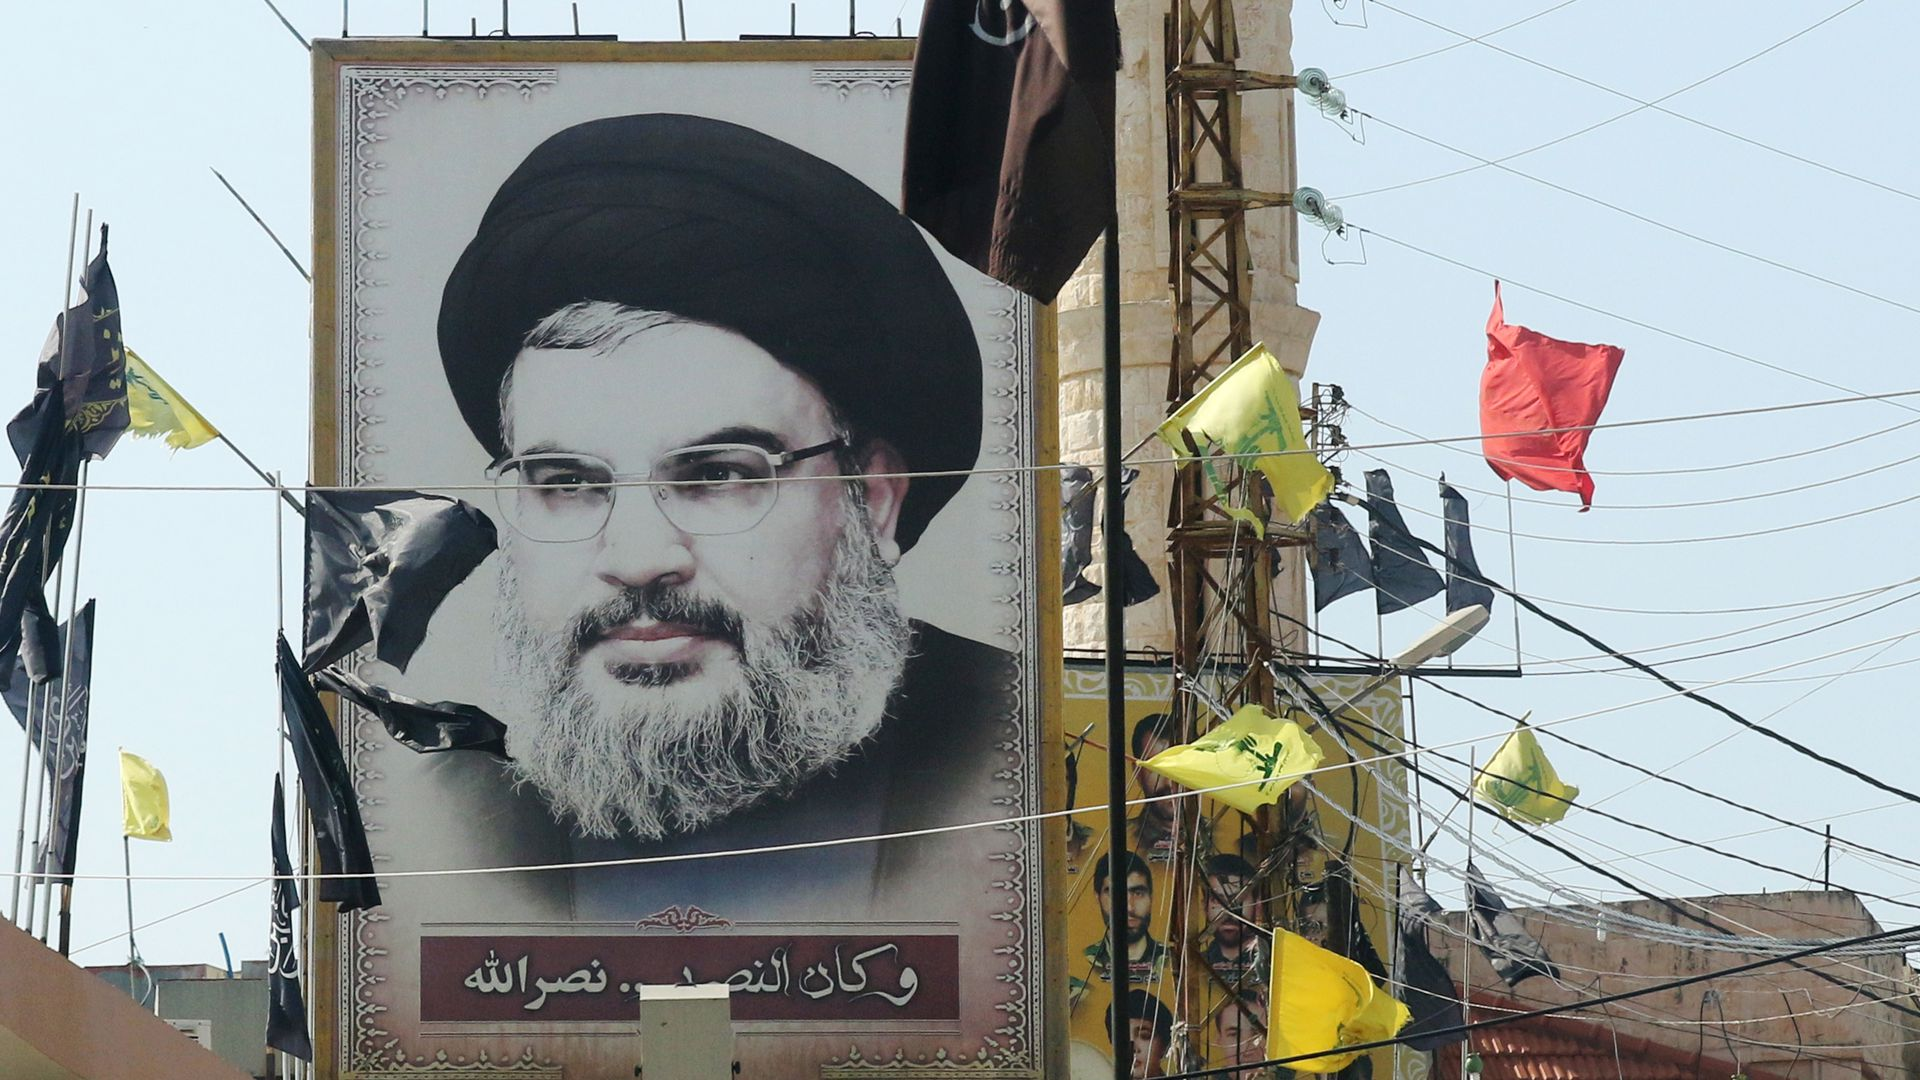 A portrait of the head of the Lebanese Shiite movement Hezbollah, Hasan Nasrallah